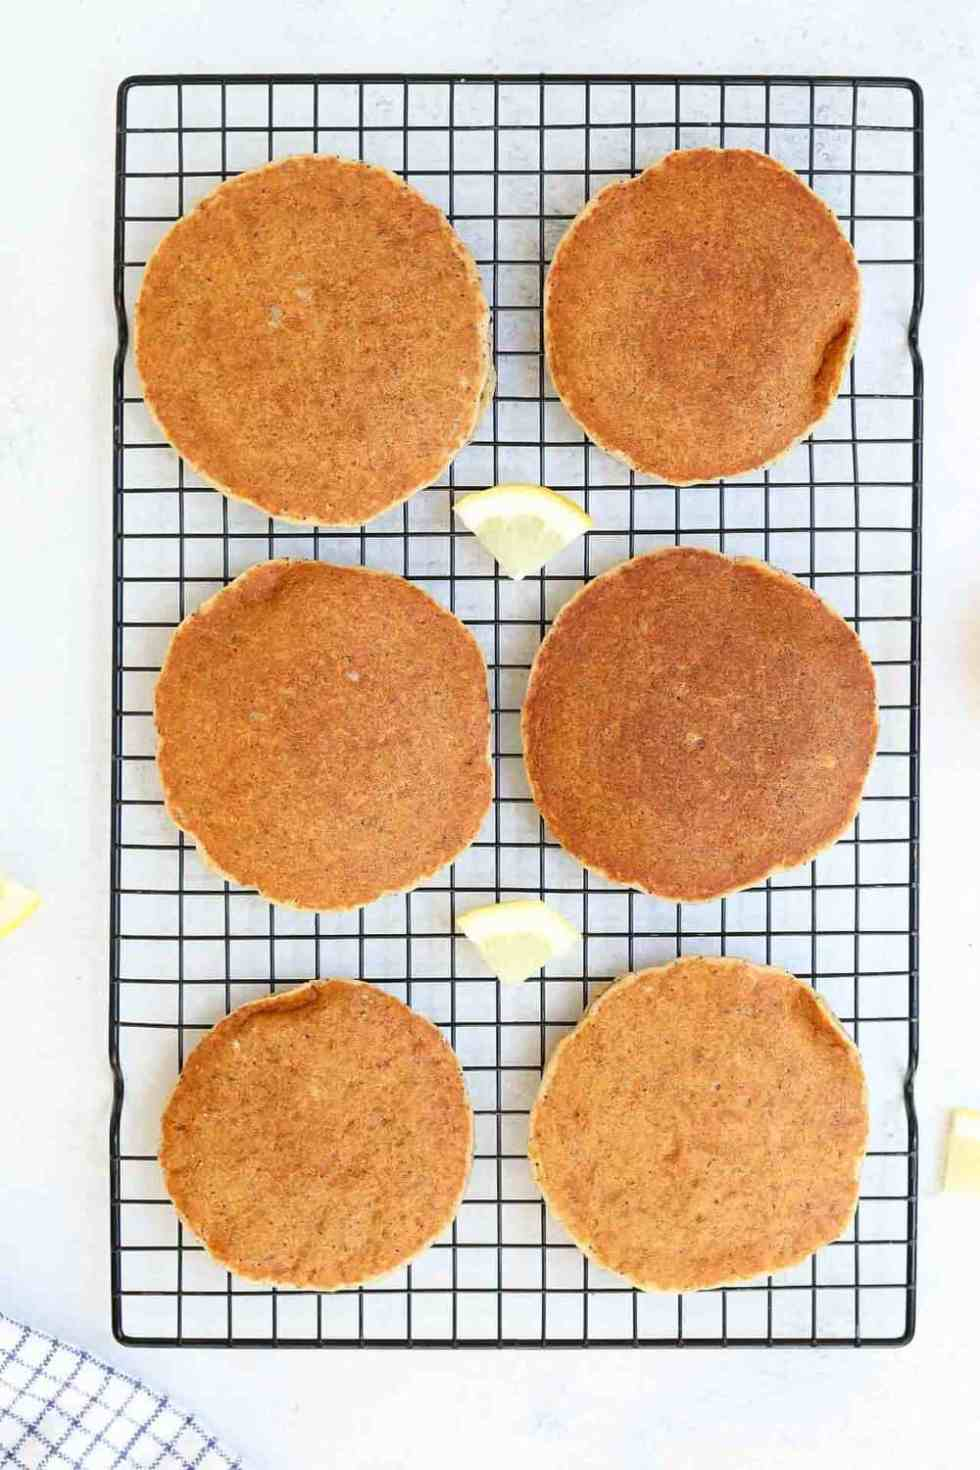 Six pancakes lined up on a black baking tray with lemon wedges.